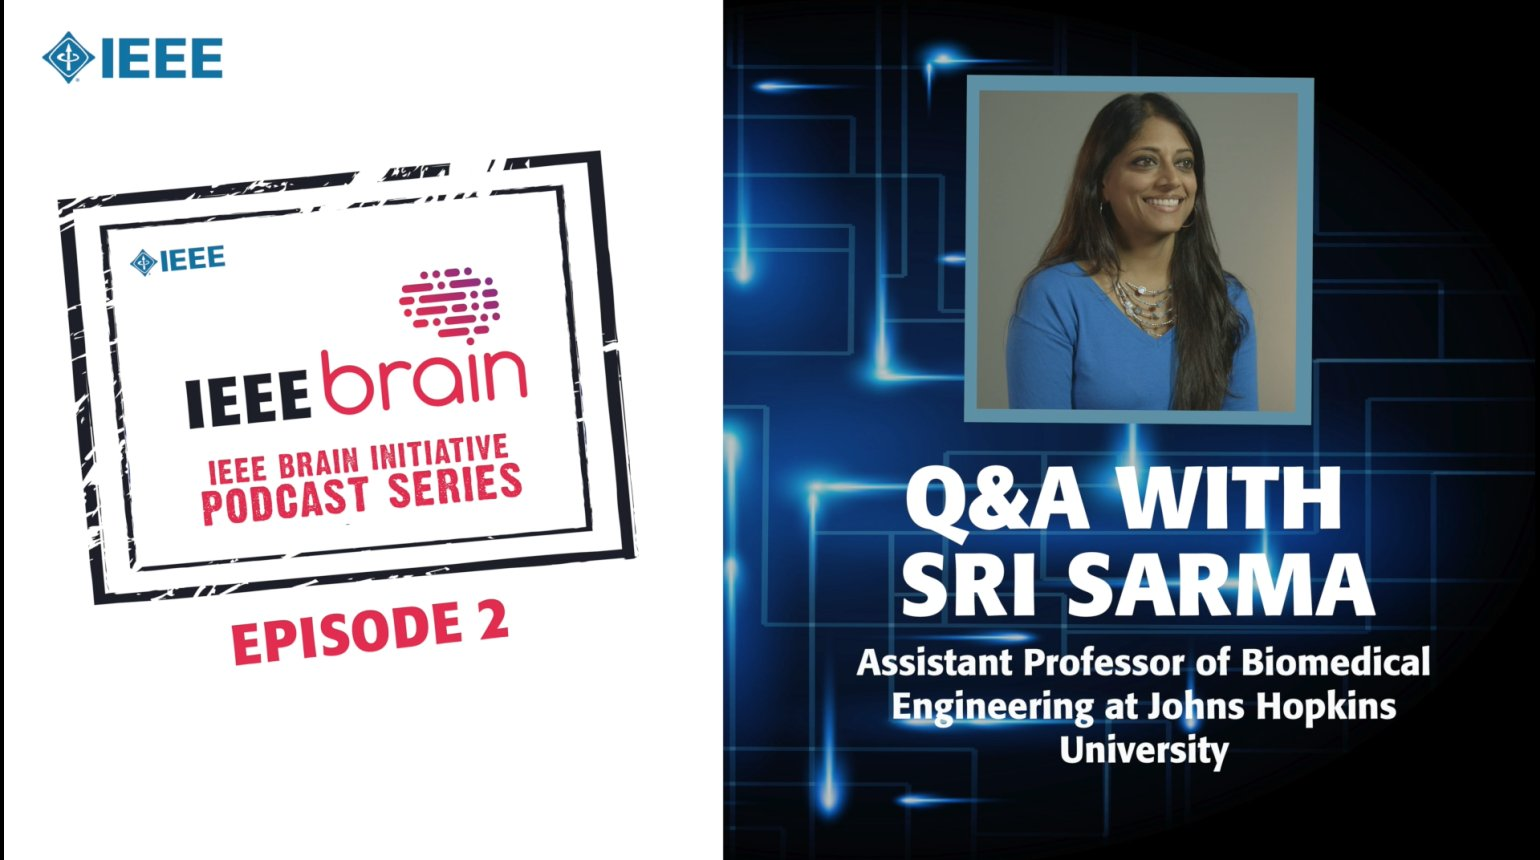 Q&A with Sri Sarma: IEEE Brain Podcast, Episode 2